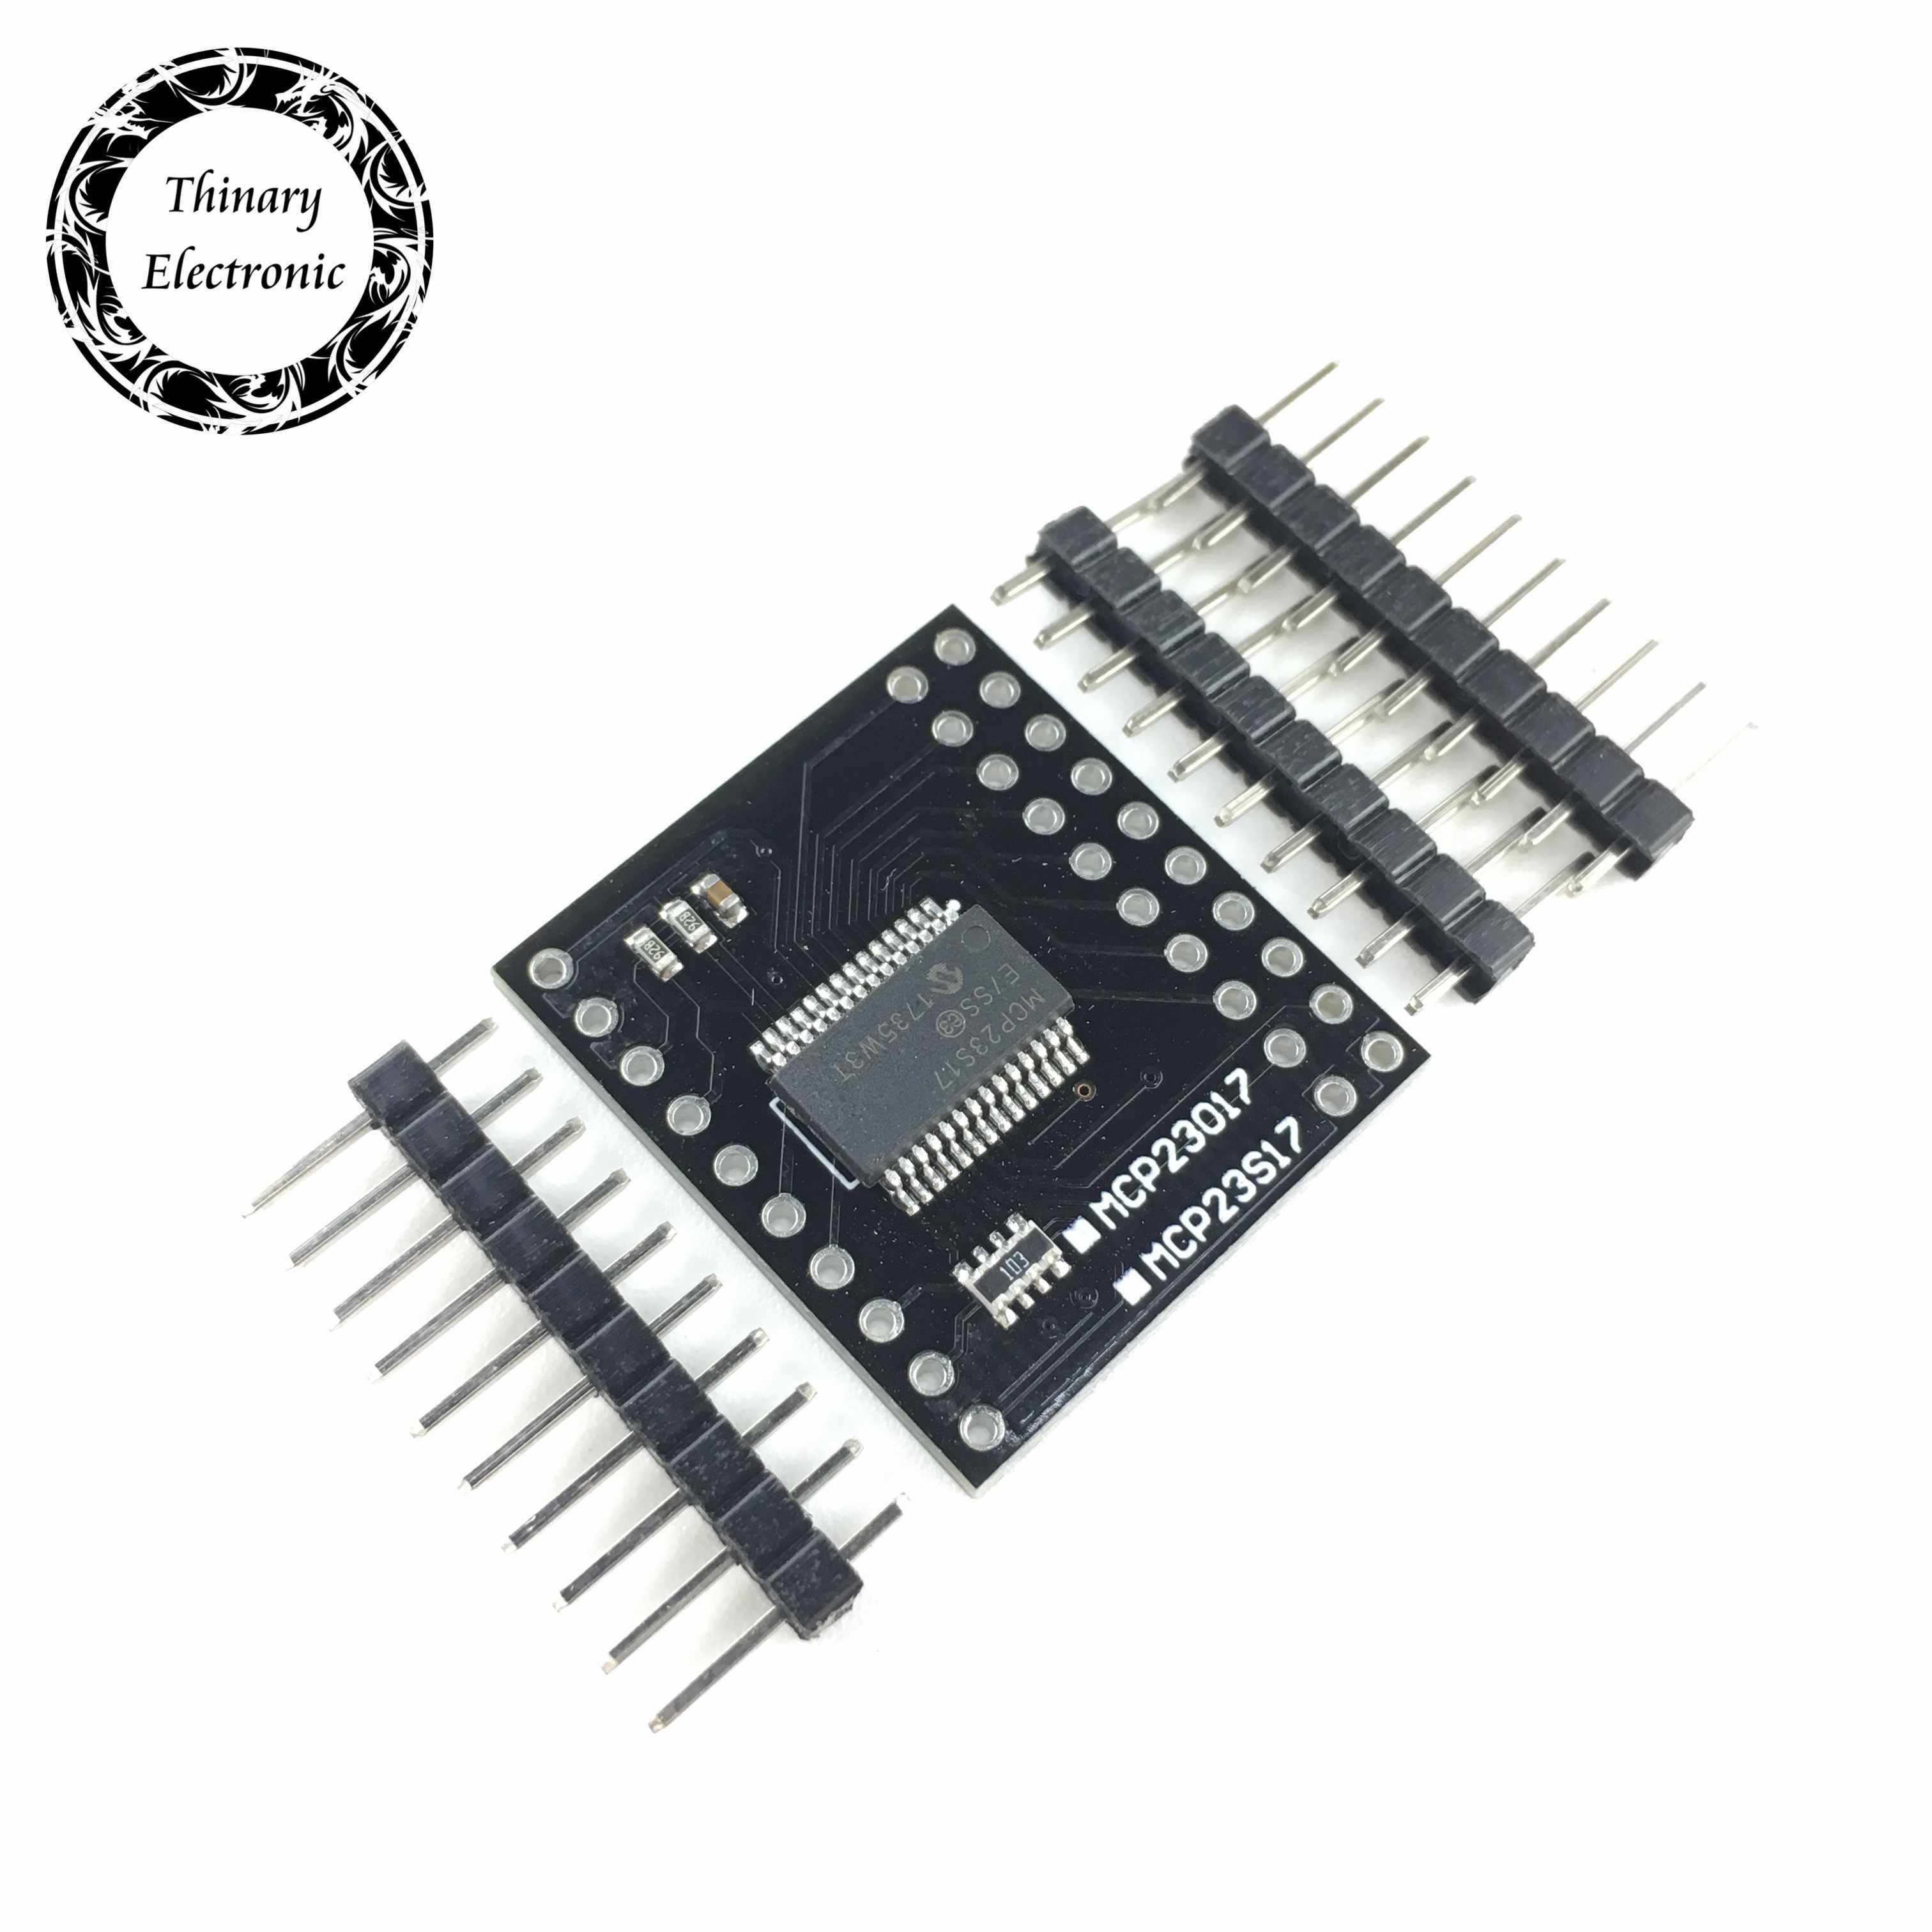 SPI Módulo de Interface Serial IIC I2C MCP23017 MCP23S17 Bidirecional 16-Bit I/O Expander Pinos 10Mhz Serial módulo de Interface